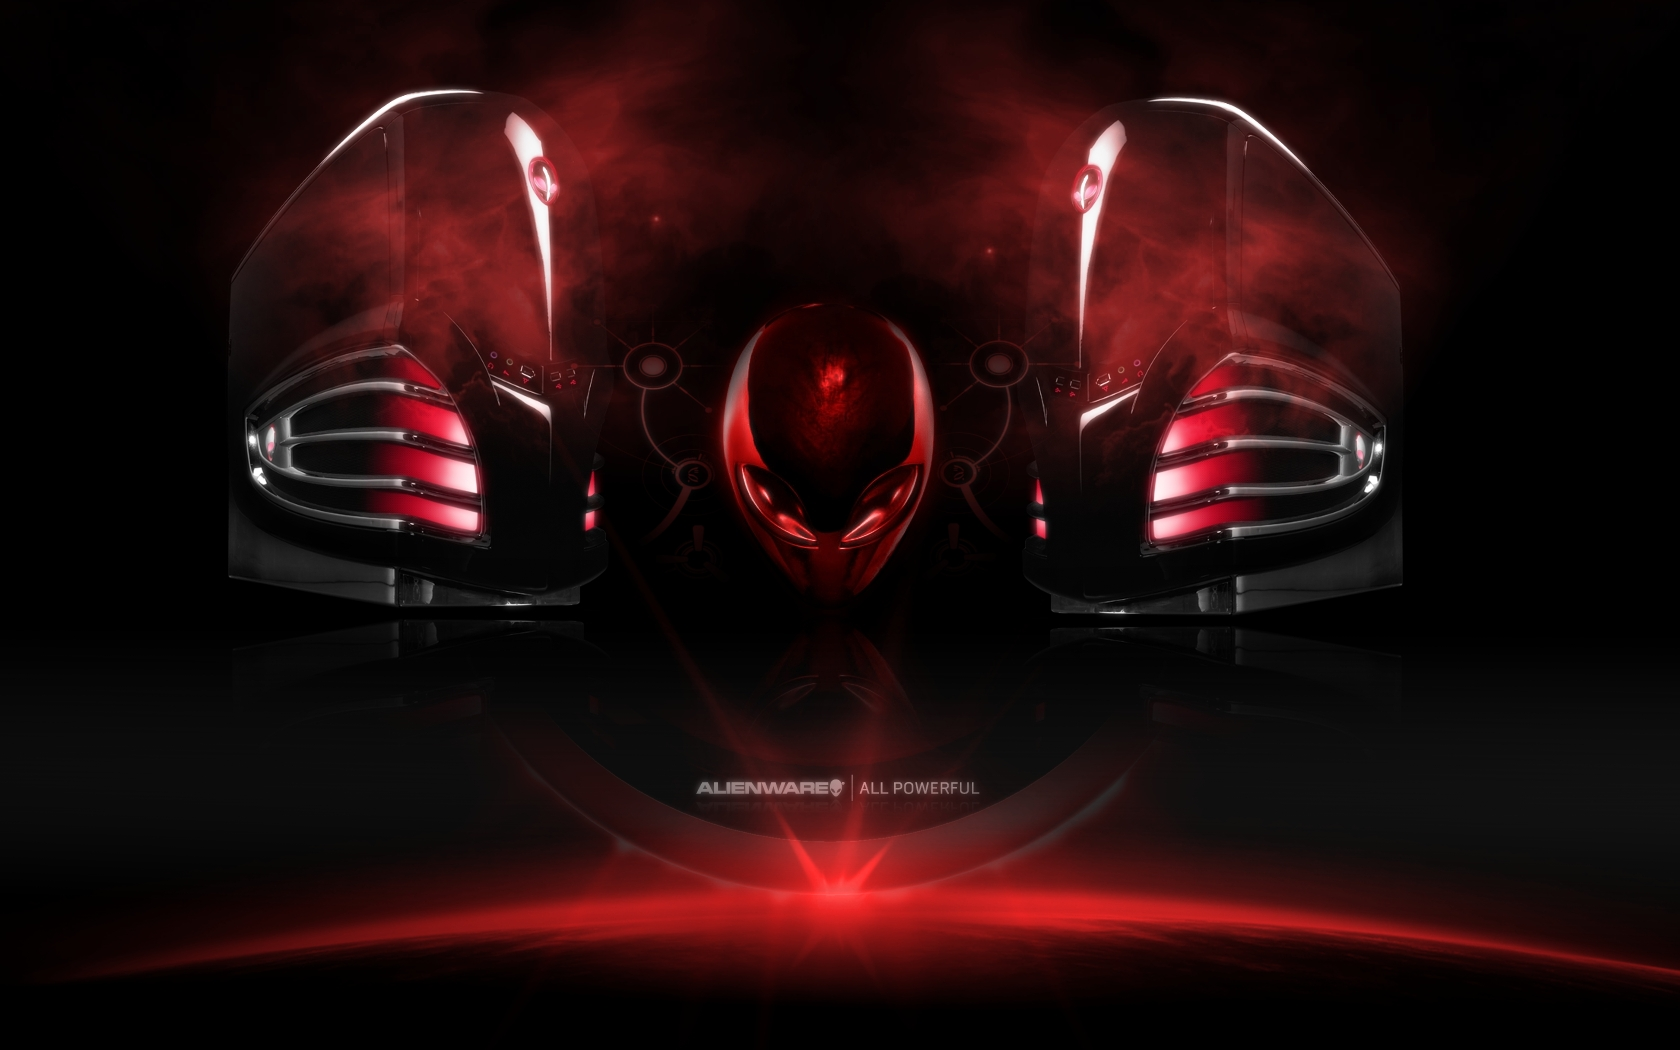 20 Spectacular Alienware Wallpapers For Desktop 1680x1050